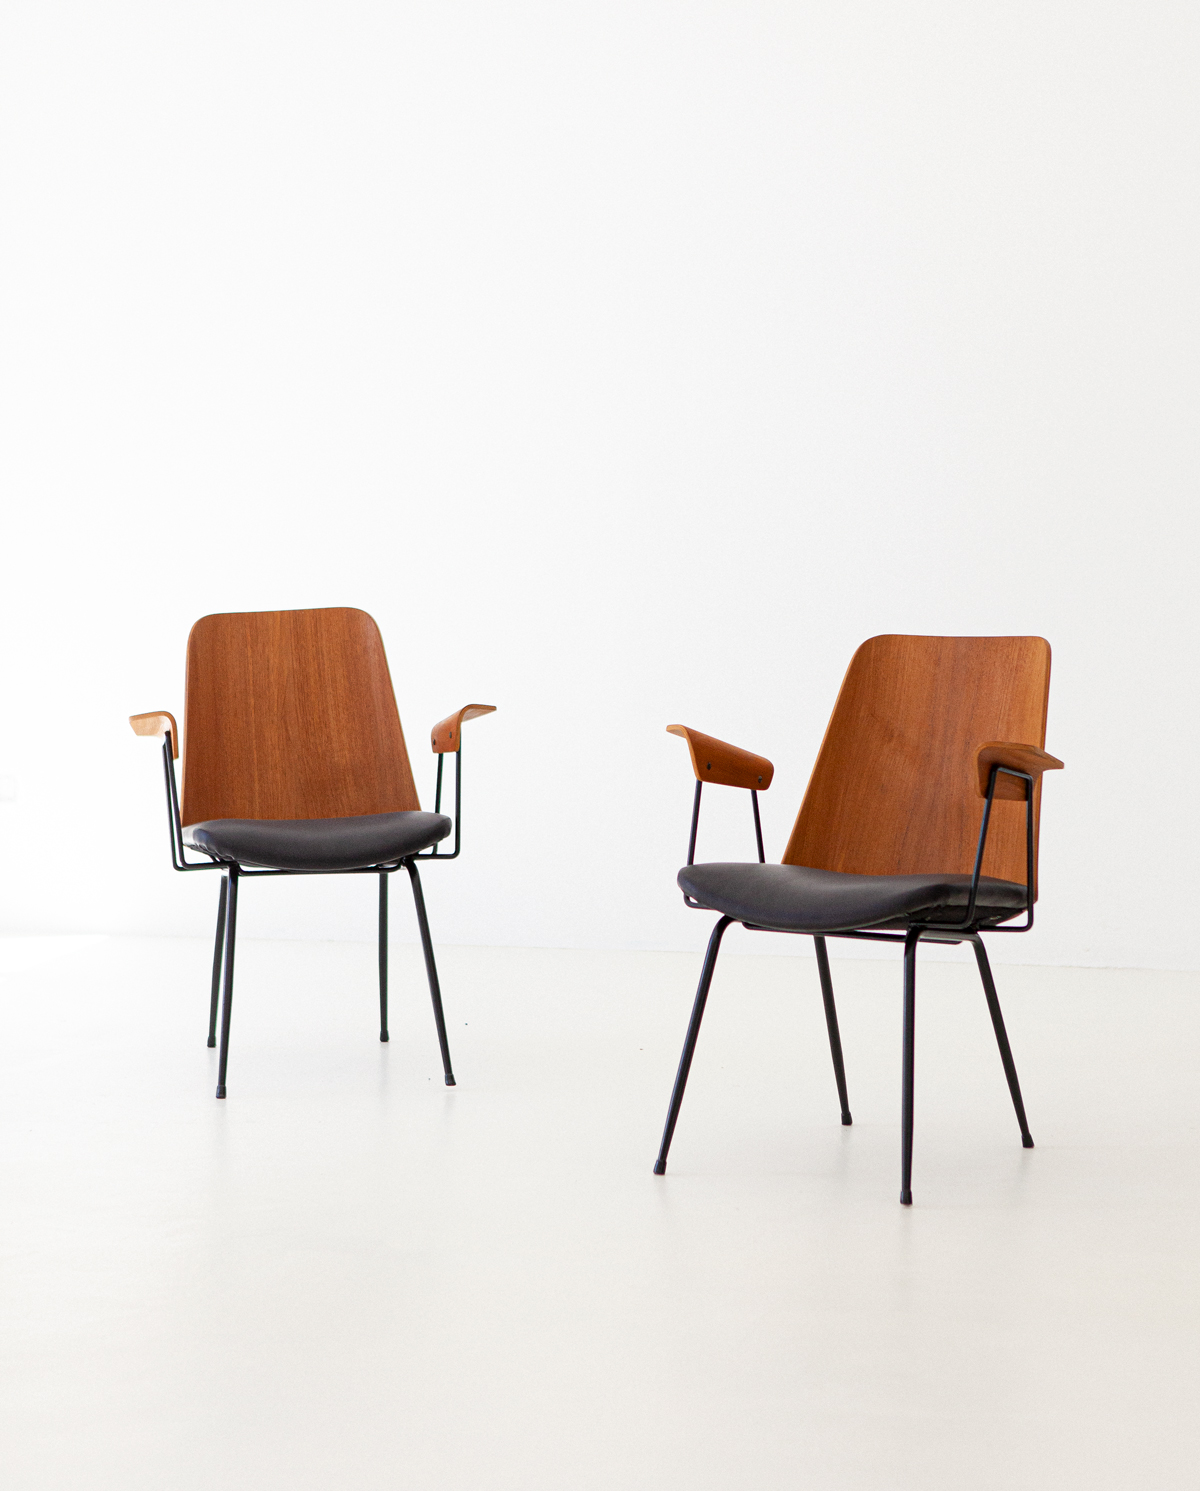 Italian-modern-desk-chairs-by-carlo-ratti-4-se287